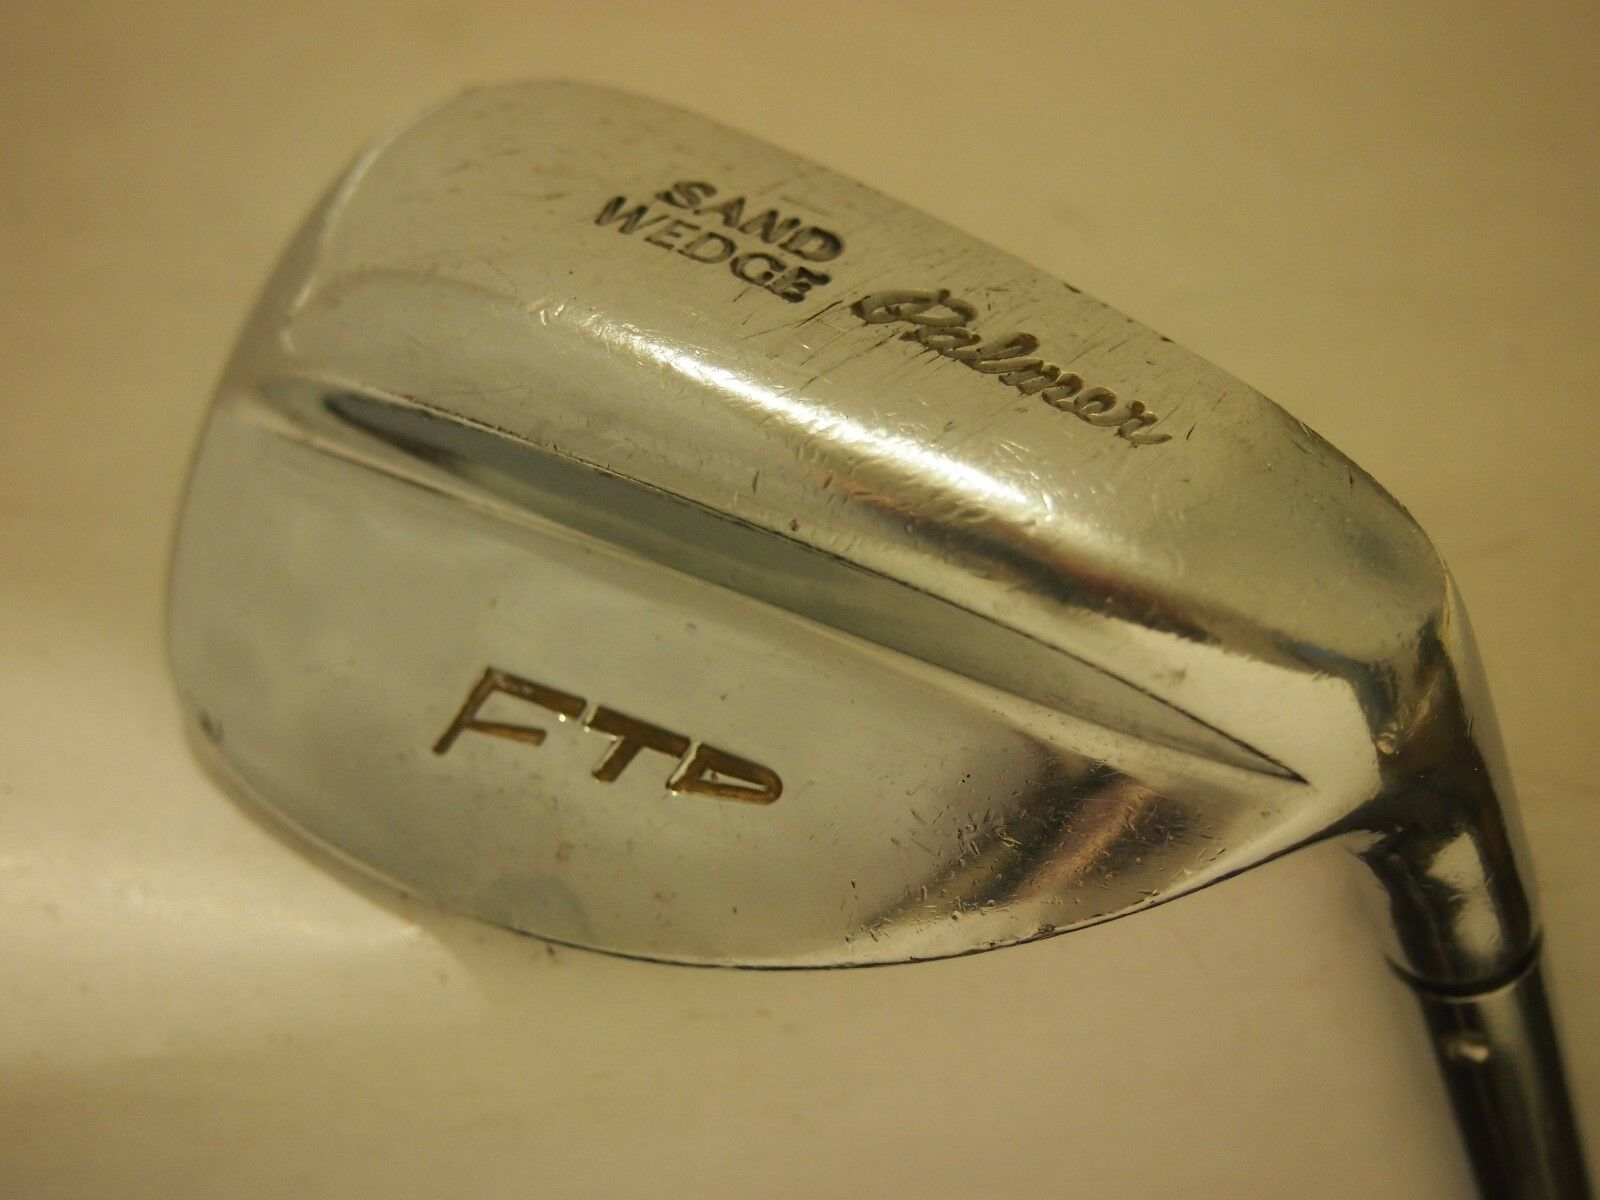 eb20f86a32e PALMER FTD -SANDWEDGE -MENS R SHIPPING IN USA - H-FREE nvzweh1840 ...